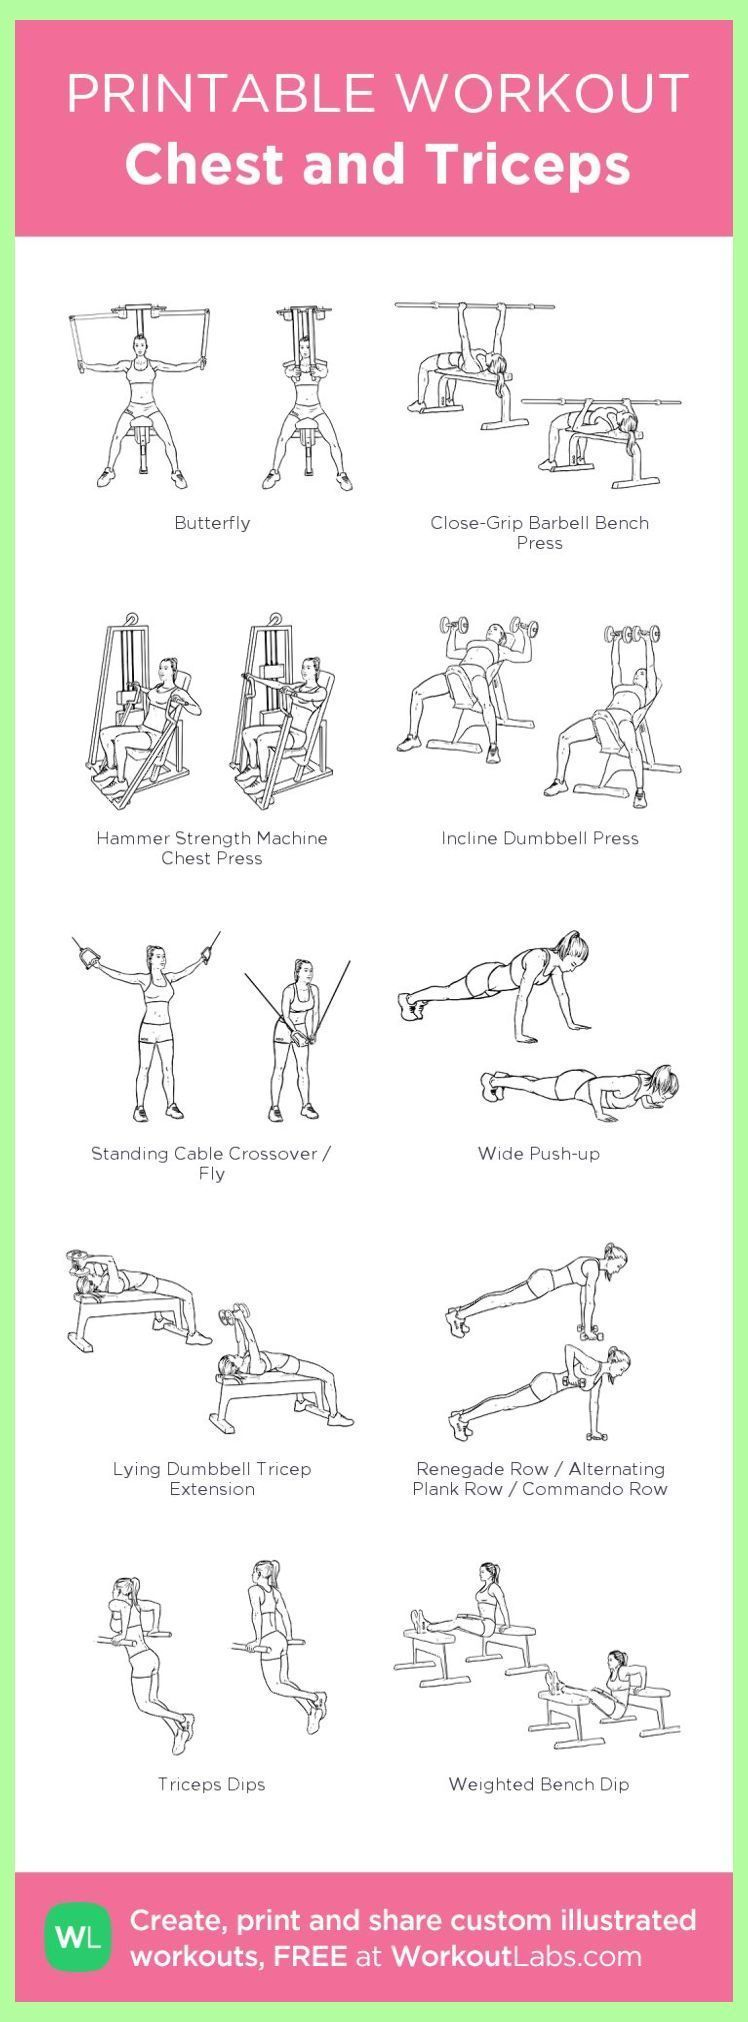 Chest and Triceps: my custom printable workout by WorkoutLabs #workoutlabs #customworkout | 3... #trapsworkout Chest and Triceps: my custom printable workout by WorkoutLabs #workoutlabs #customworkout | 3 Exercises For Triceps | Knee exercises |  Trap Workout For Women . #bodytransformation #WerkOut Stuff #trapsworkout Chest and Triceps: my custom printable workout by WorkoutLabs #workoutlabs #customworkout | 3... #trapsworkout Chest and Triceps: my custom printable workout by WorkoutLabs #w #trapsworkout